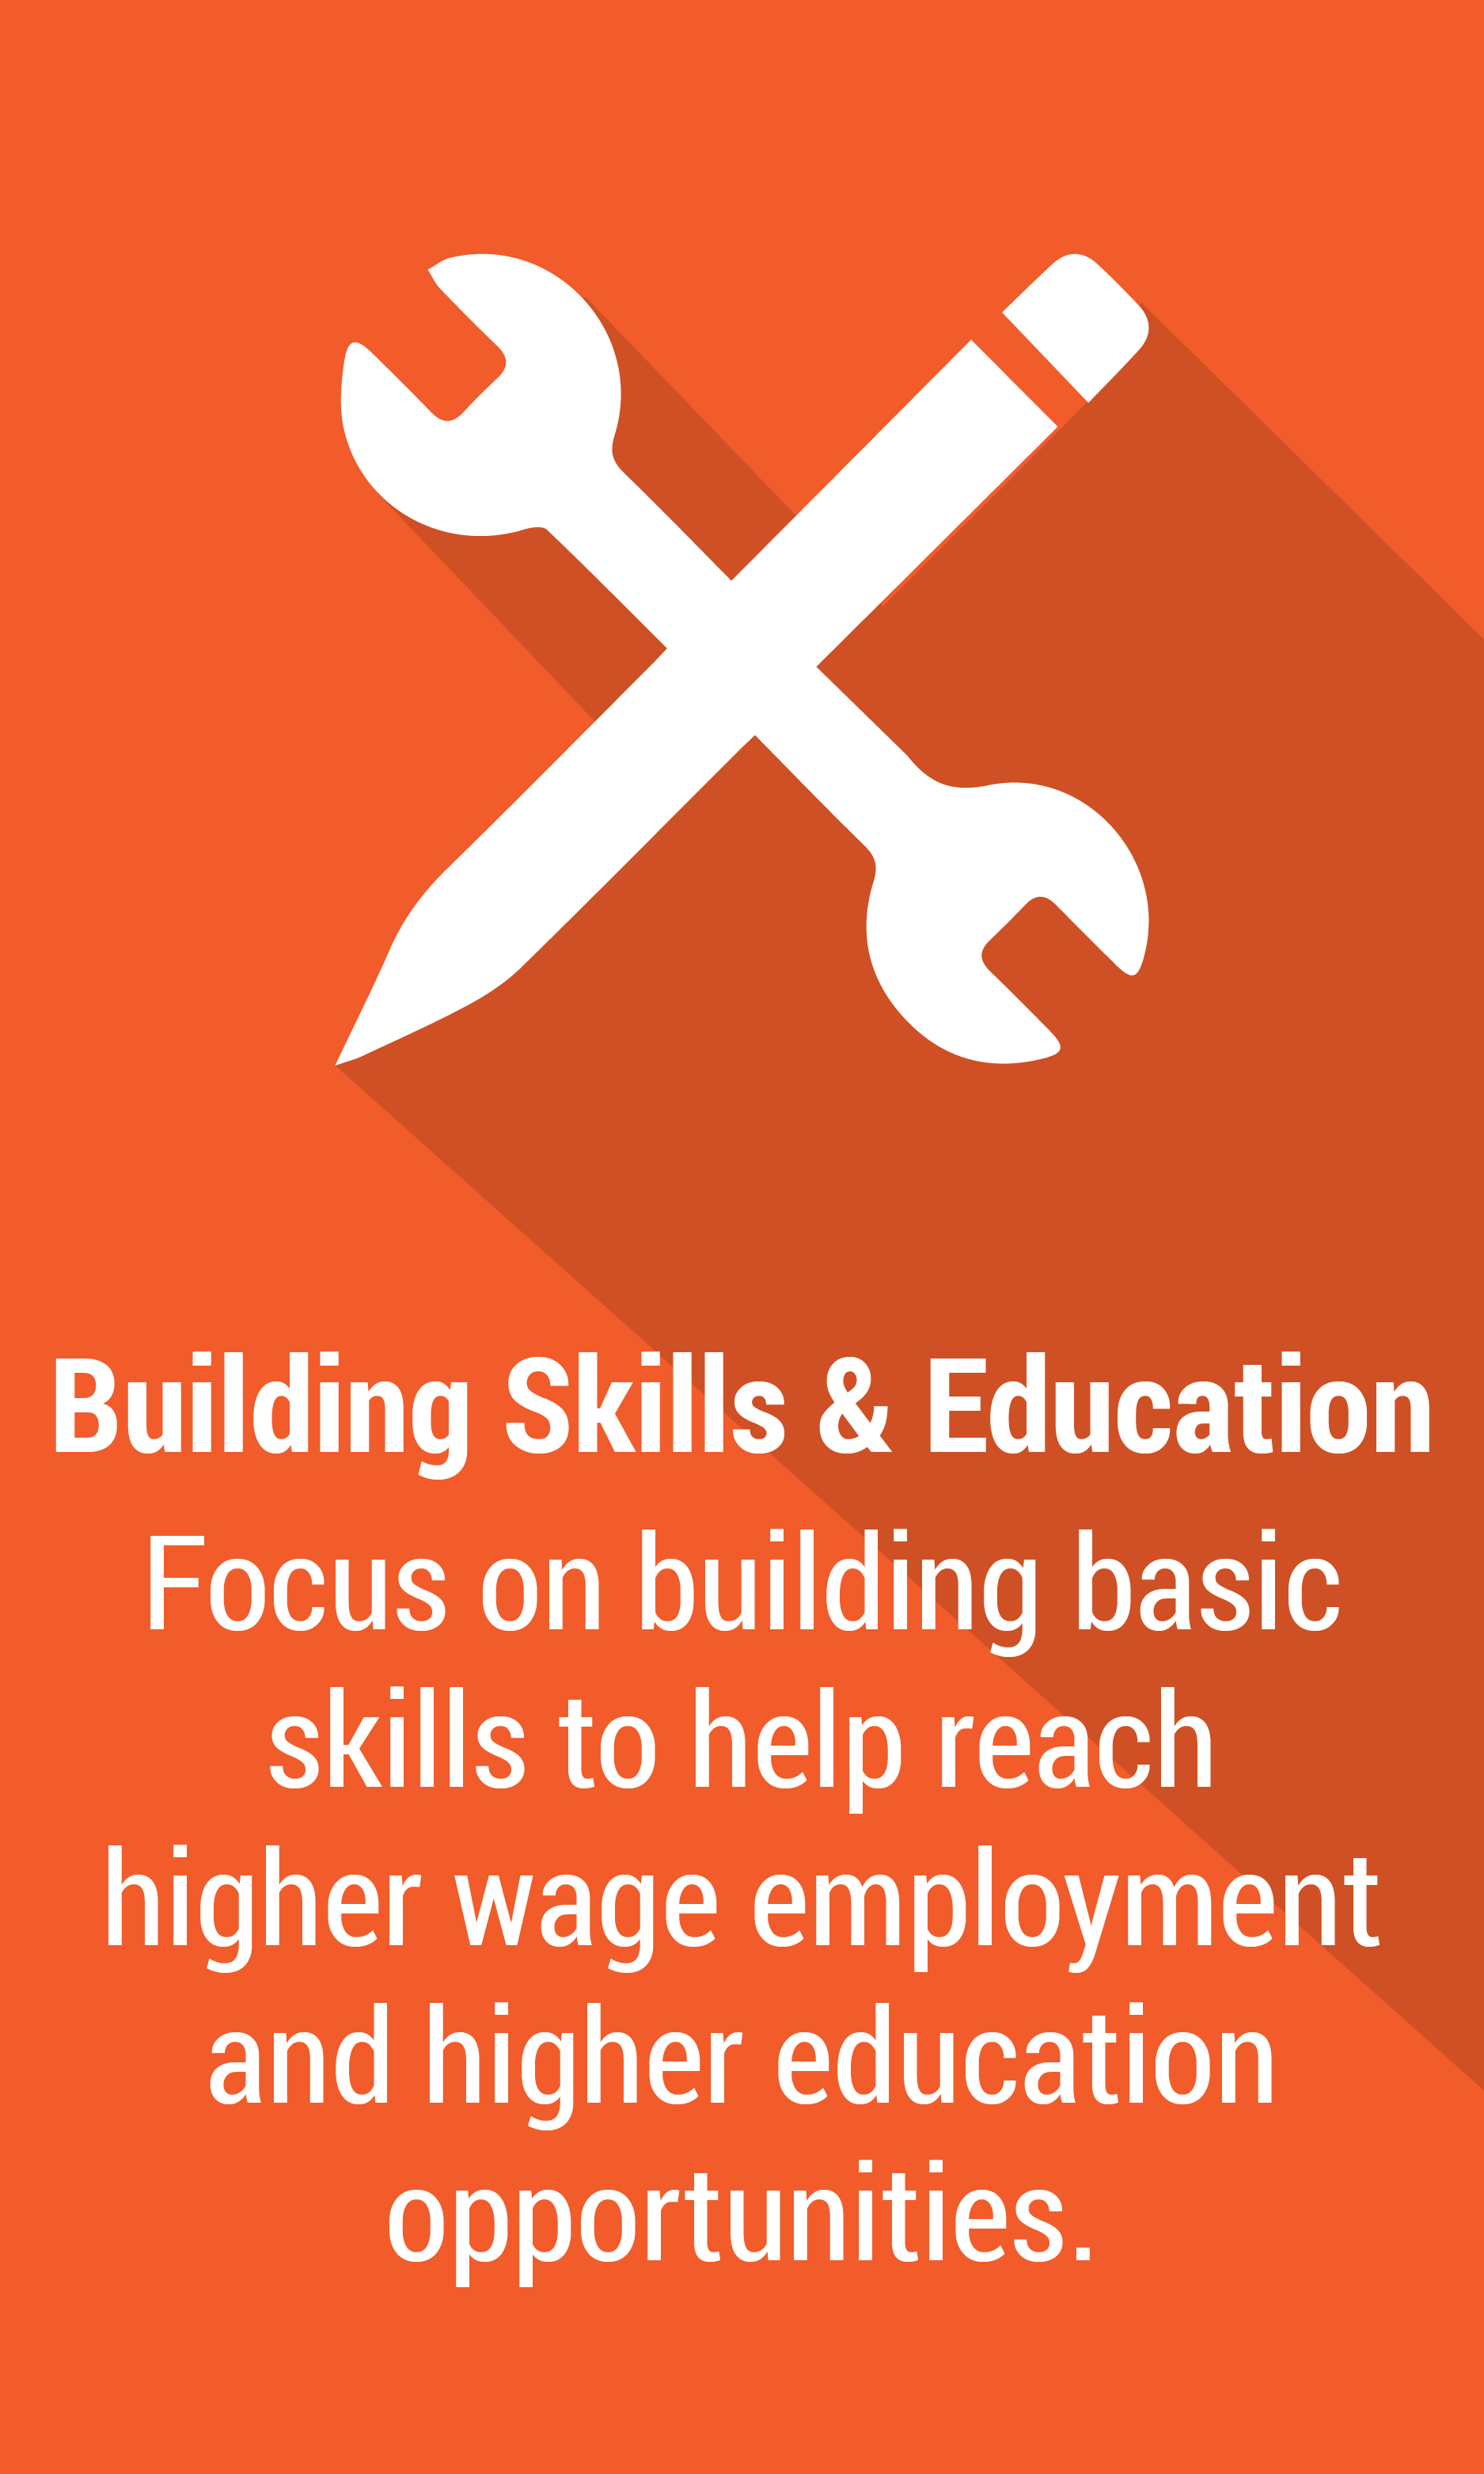 Building Skills and Education - Addressing Financial Stability Issues